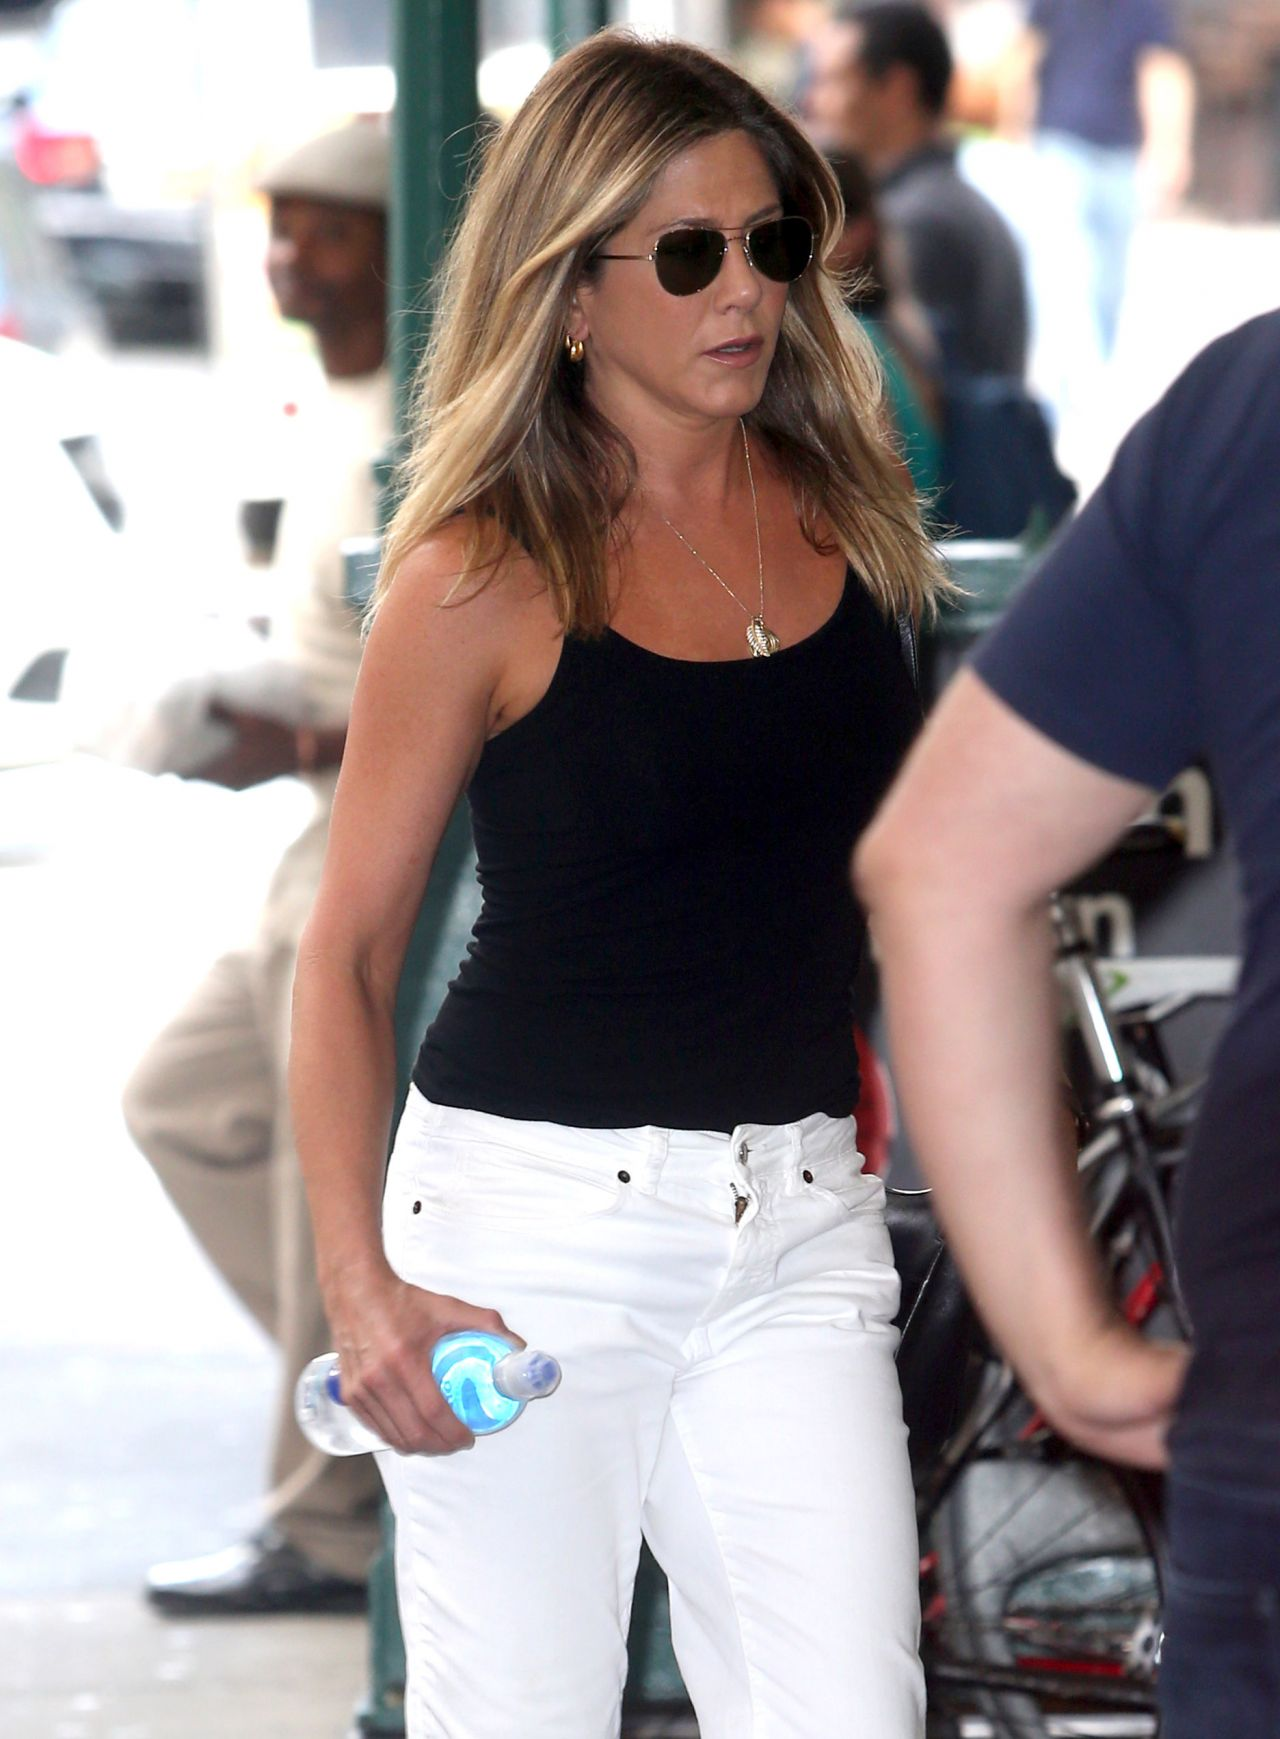 The Goddess Manifests Herself In The Form Of Cuteness,<br />We Just Call Her The Goddess Of Cuteness!&NewLine;&NewLine;Gallery Goddess Of Cuteness - Jennifer&lowbar;Aniston-Cute-057&period;jpg